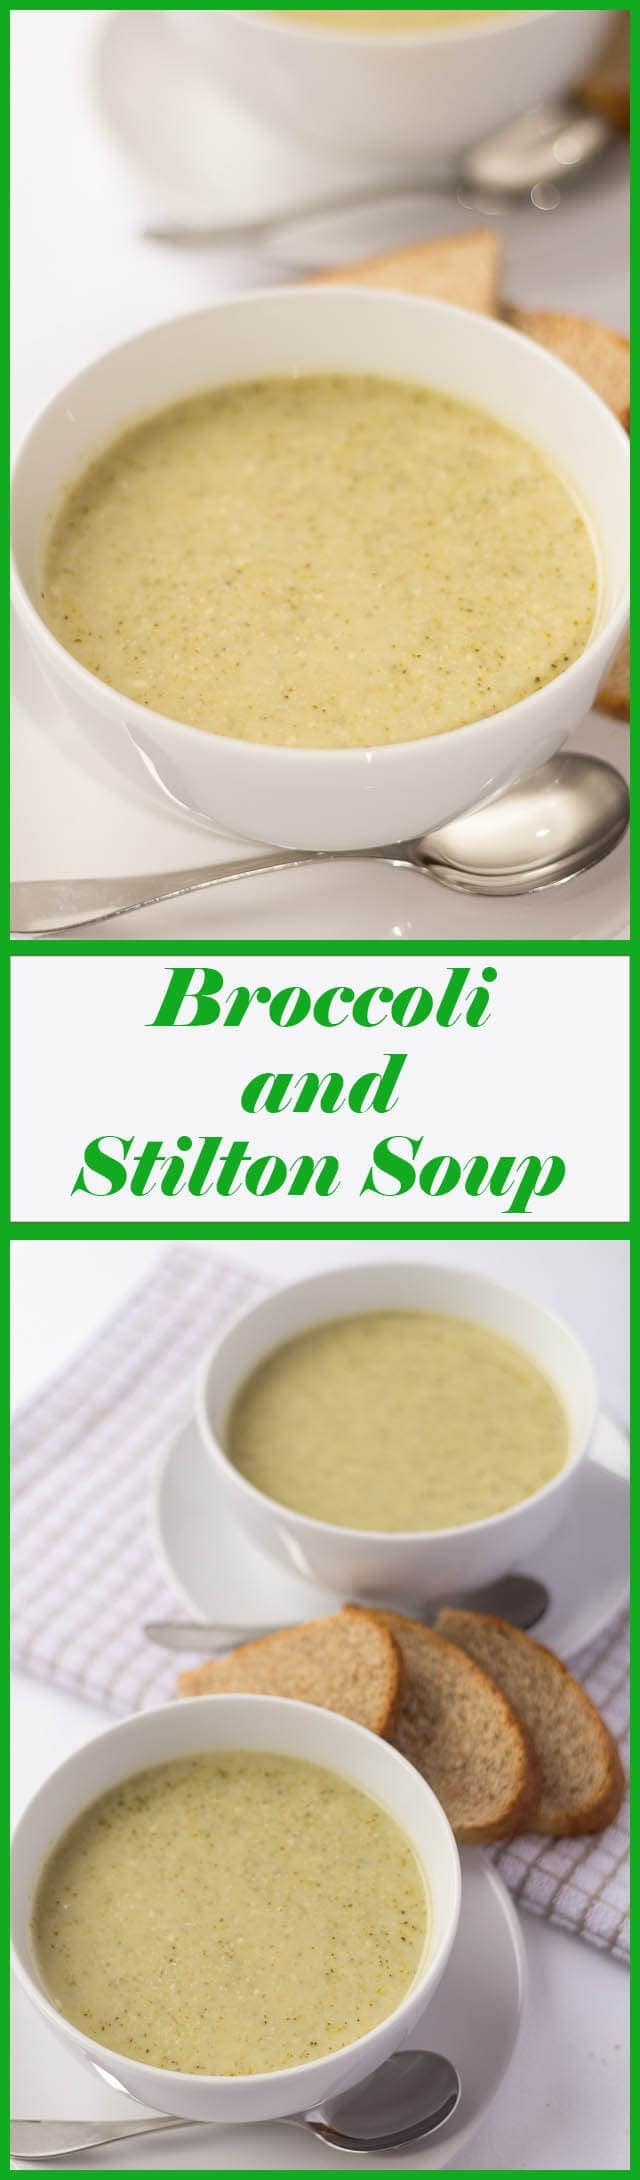 Cheesy, creamy and just delicious. This healthy, low calorie broccoli and stilton soup brings a warm glow, made at any time of the year.